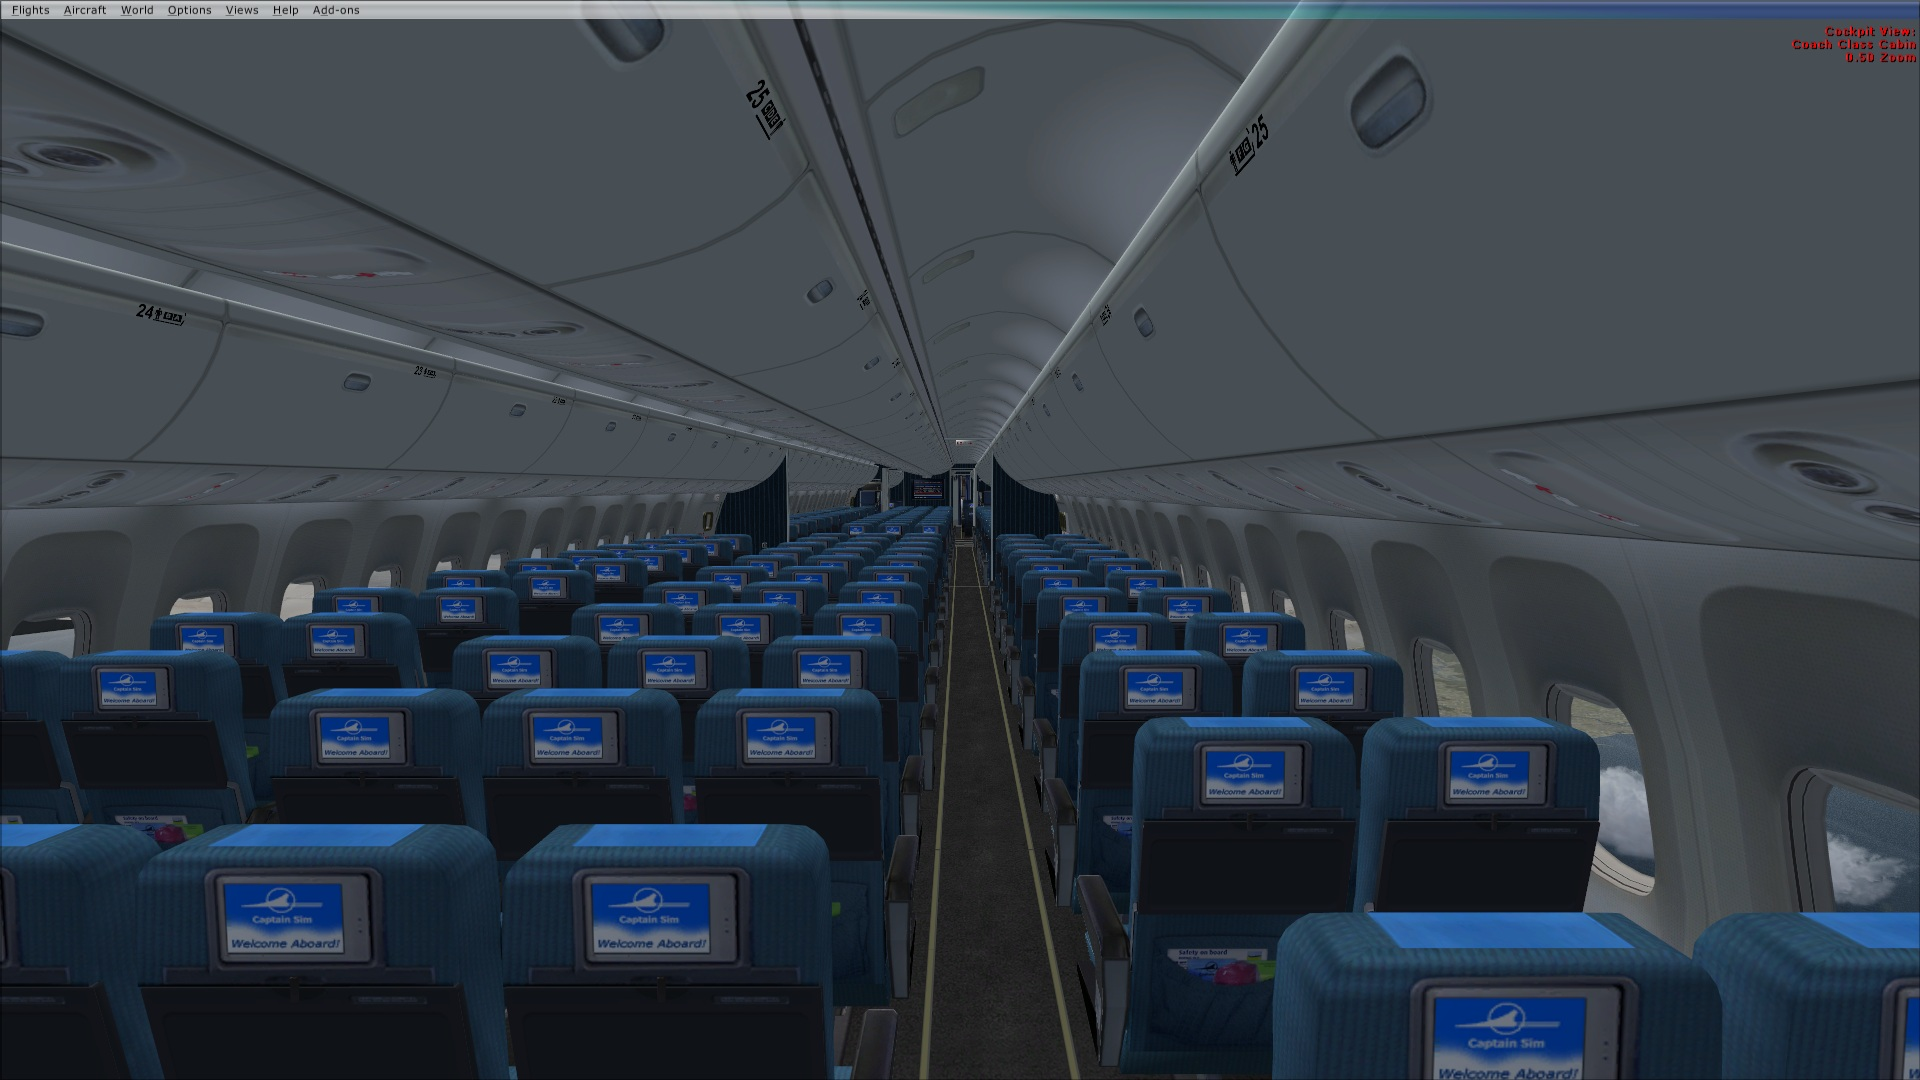 Review: Captain Sim 767 Base and expansions | The Boeing ...